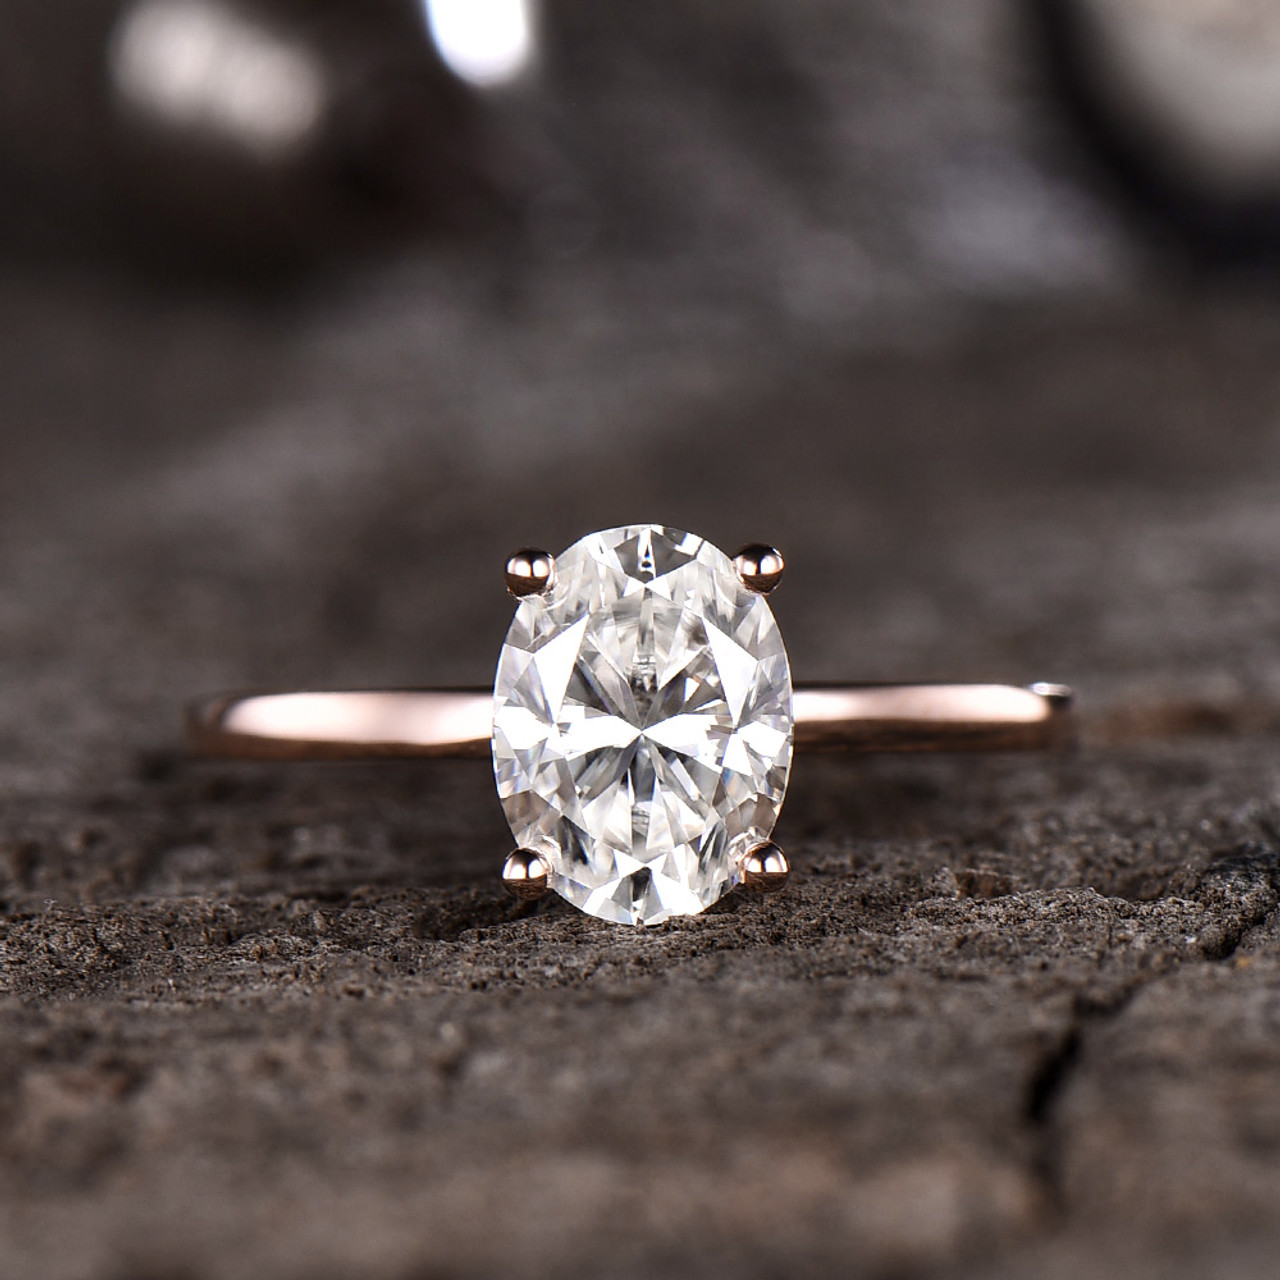 8d9a434993918 Forever One Moissanite Engagement ring Oval Rose Gold 6x8mm Moissanite  Solitaire Ring 1.5 carat near-colorness gemstone Solid 14K/18K